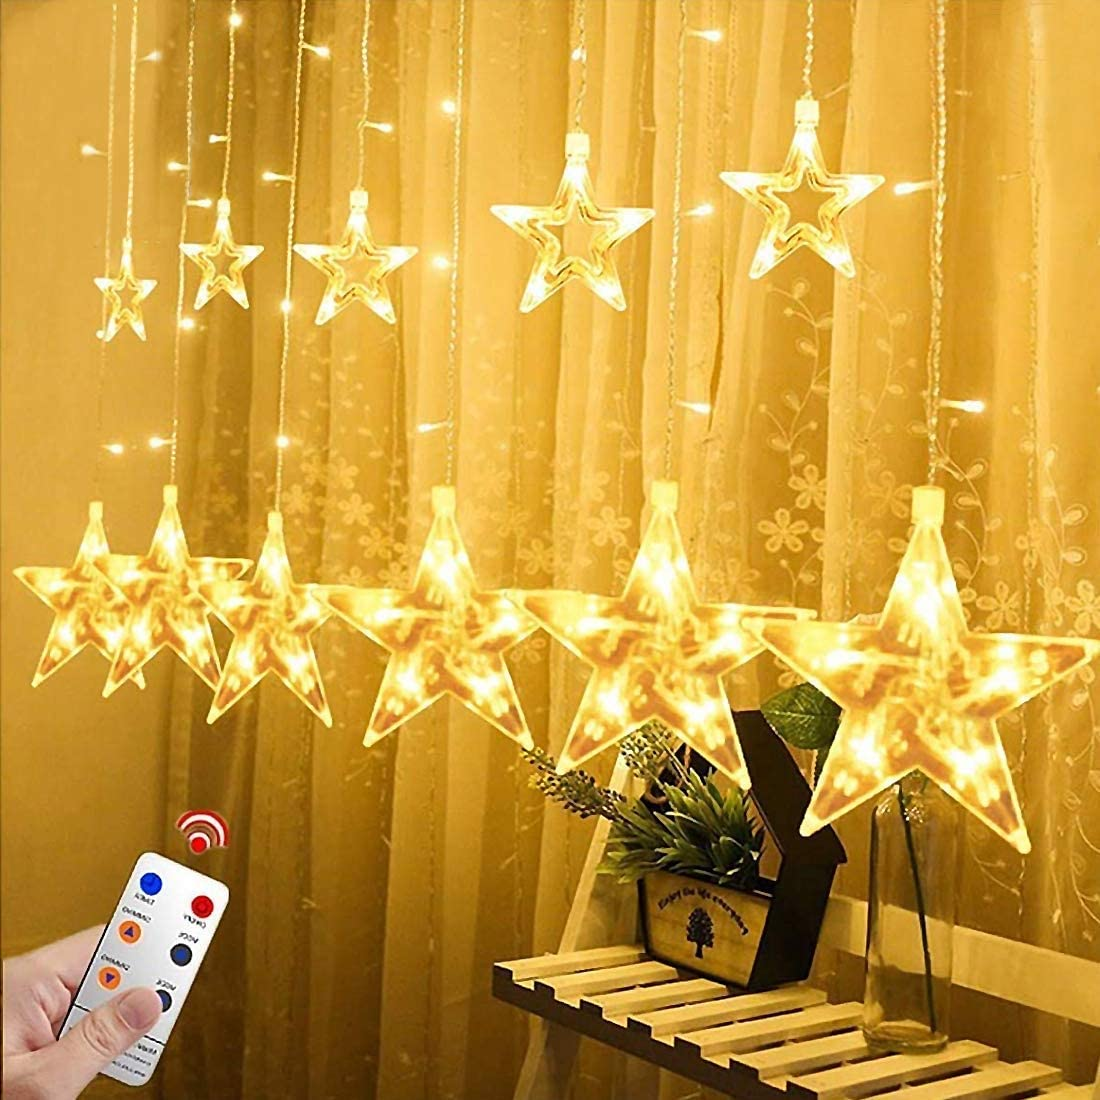 Amazon Com Star Lights Star String Lights For Bedroom Twinkle Lights Led Window Curtain String Light With 12 Stars 138 Leds 8 Modes For Xmas Wedding Party Garden Valentine S Day Outdoor Indoor Wall Decors